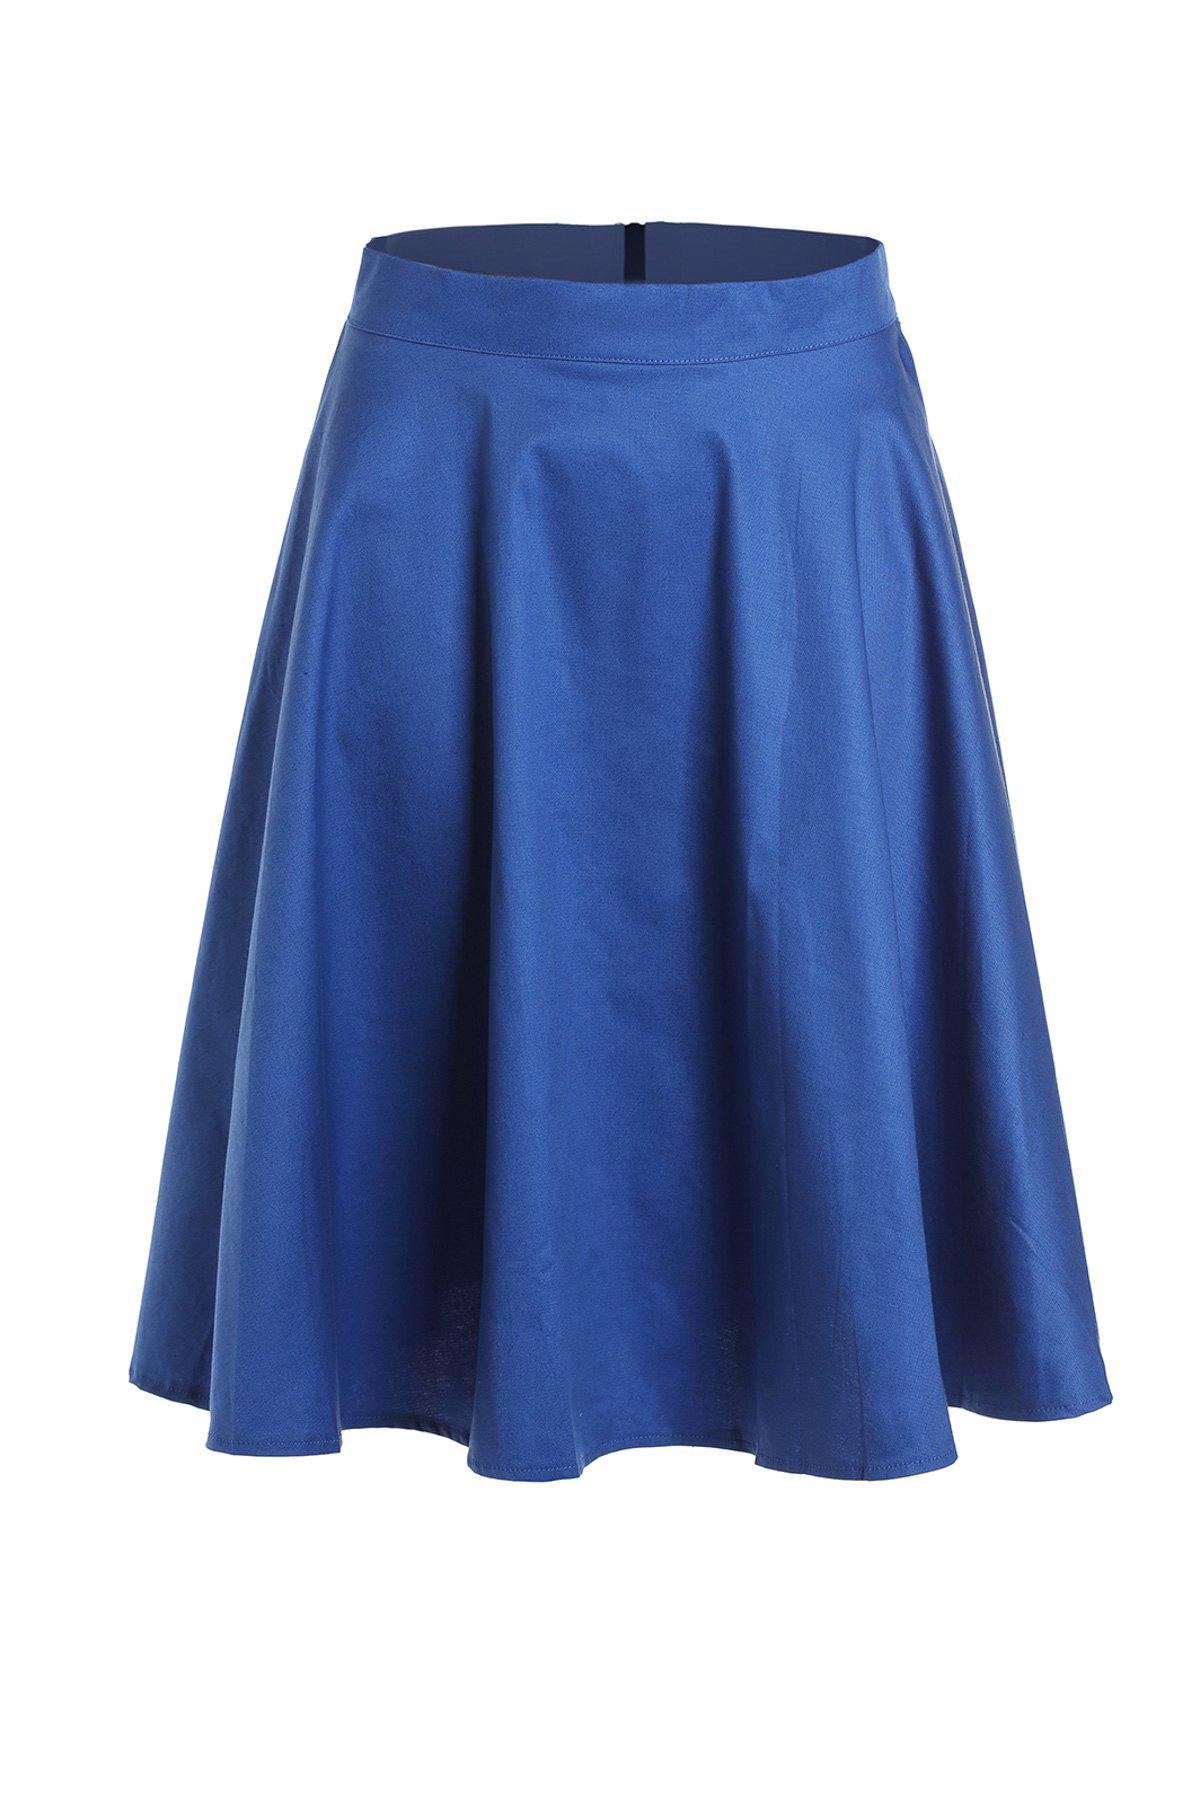 Cheap High Waist Solid Color A-Line Ball Circle Skater Skirt